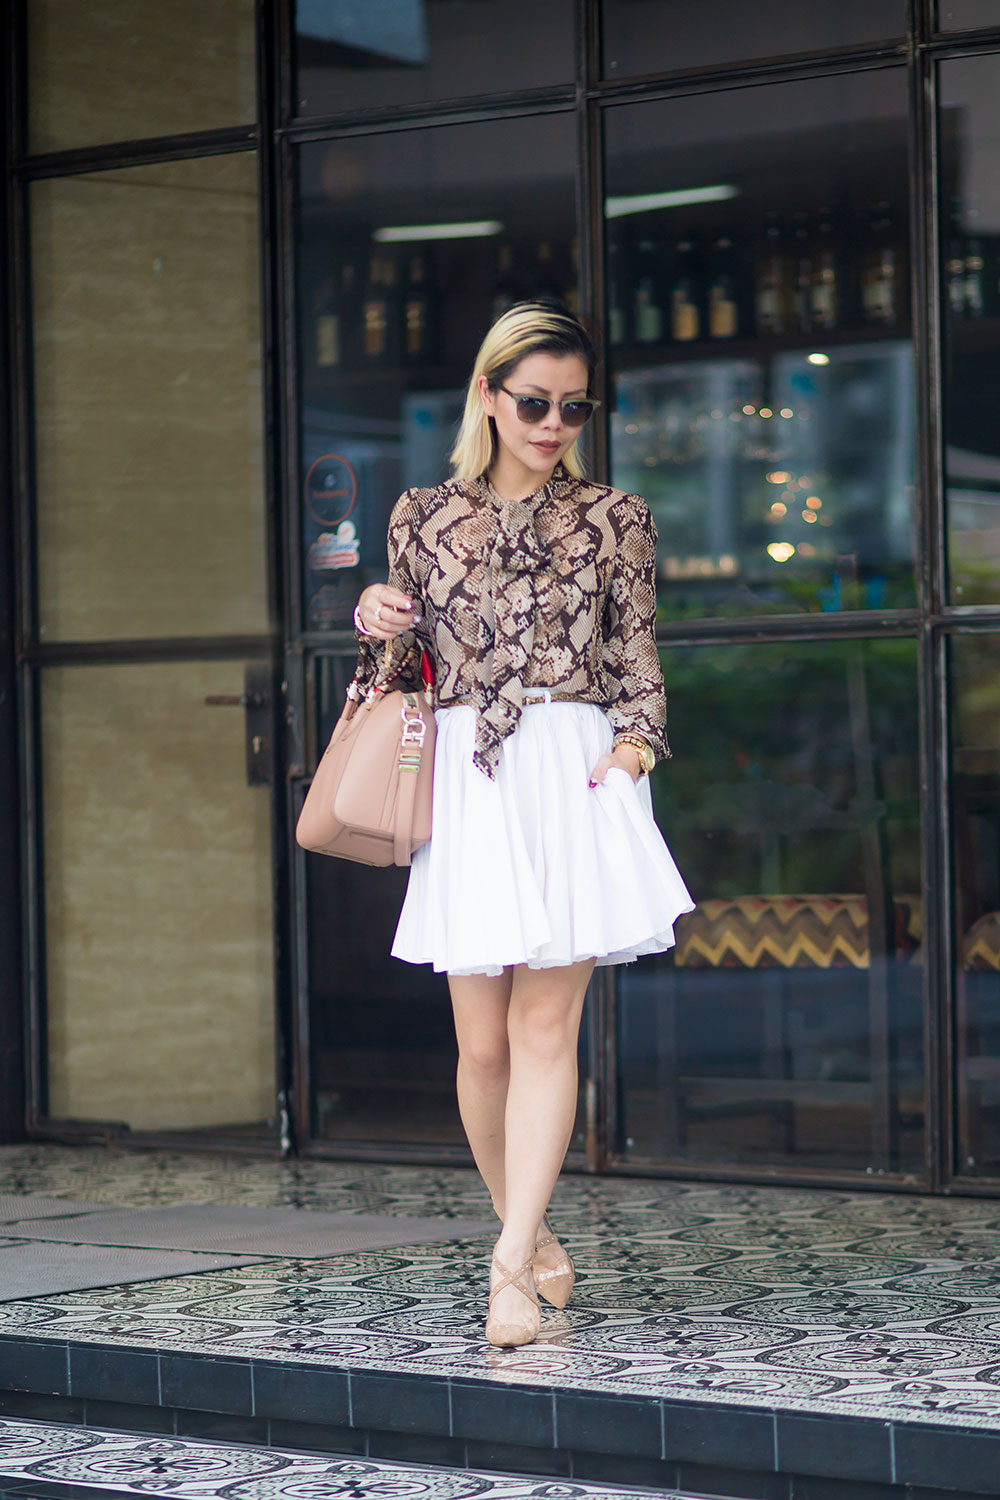 Crystal Phuong- Fashion Blogger- Raye the label shoes, white skirt & snake skin blouse